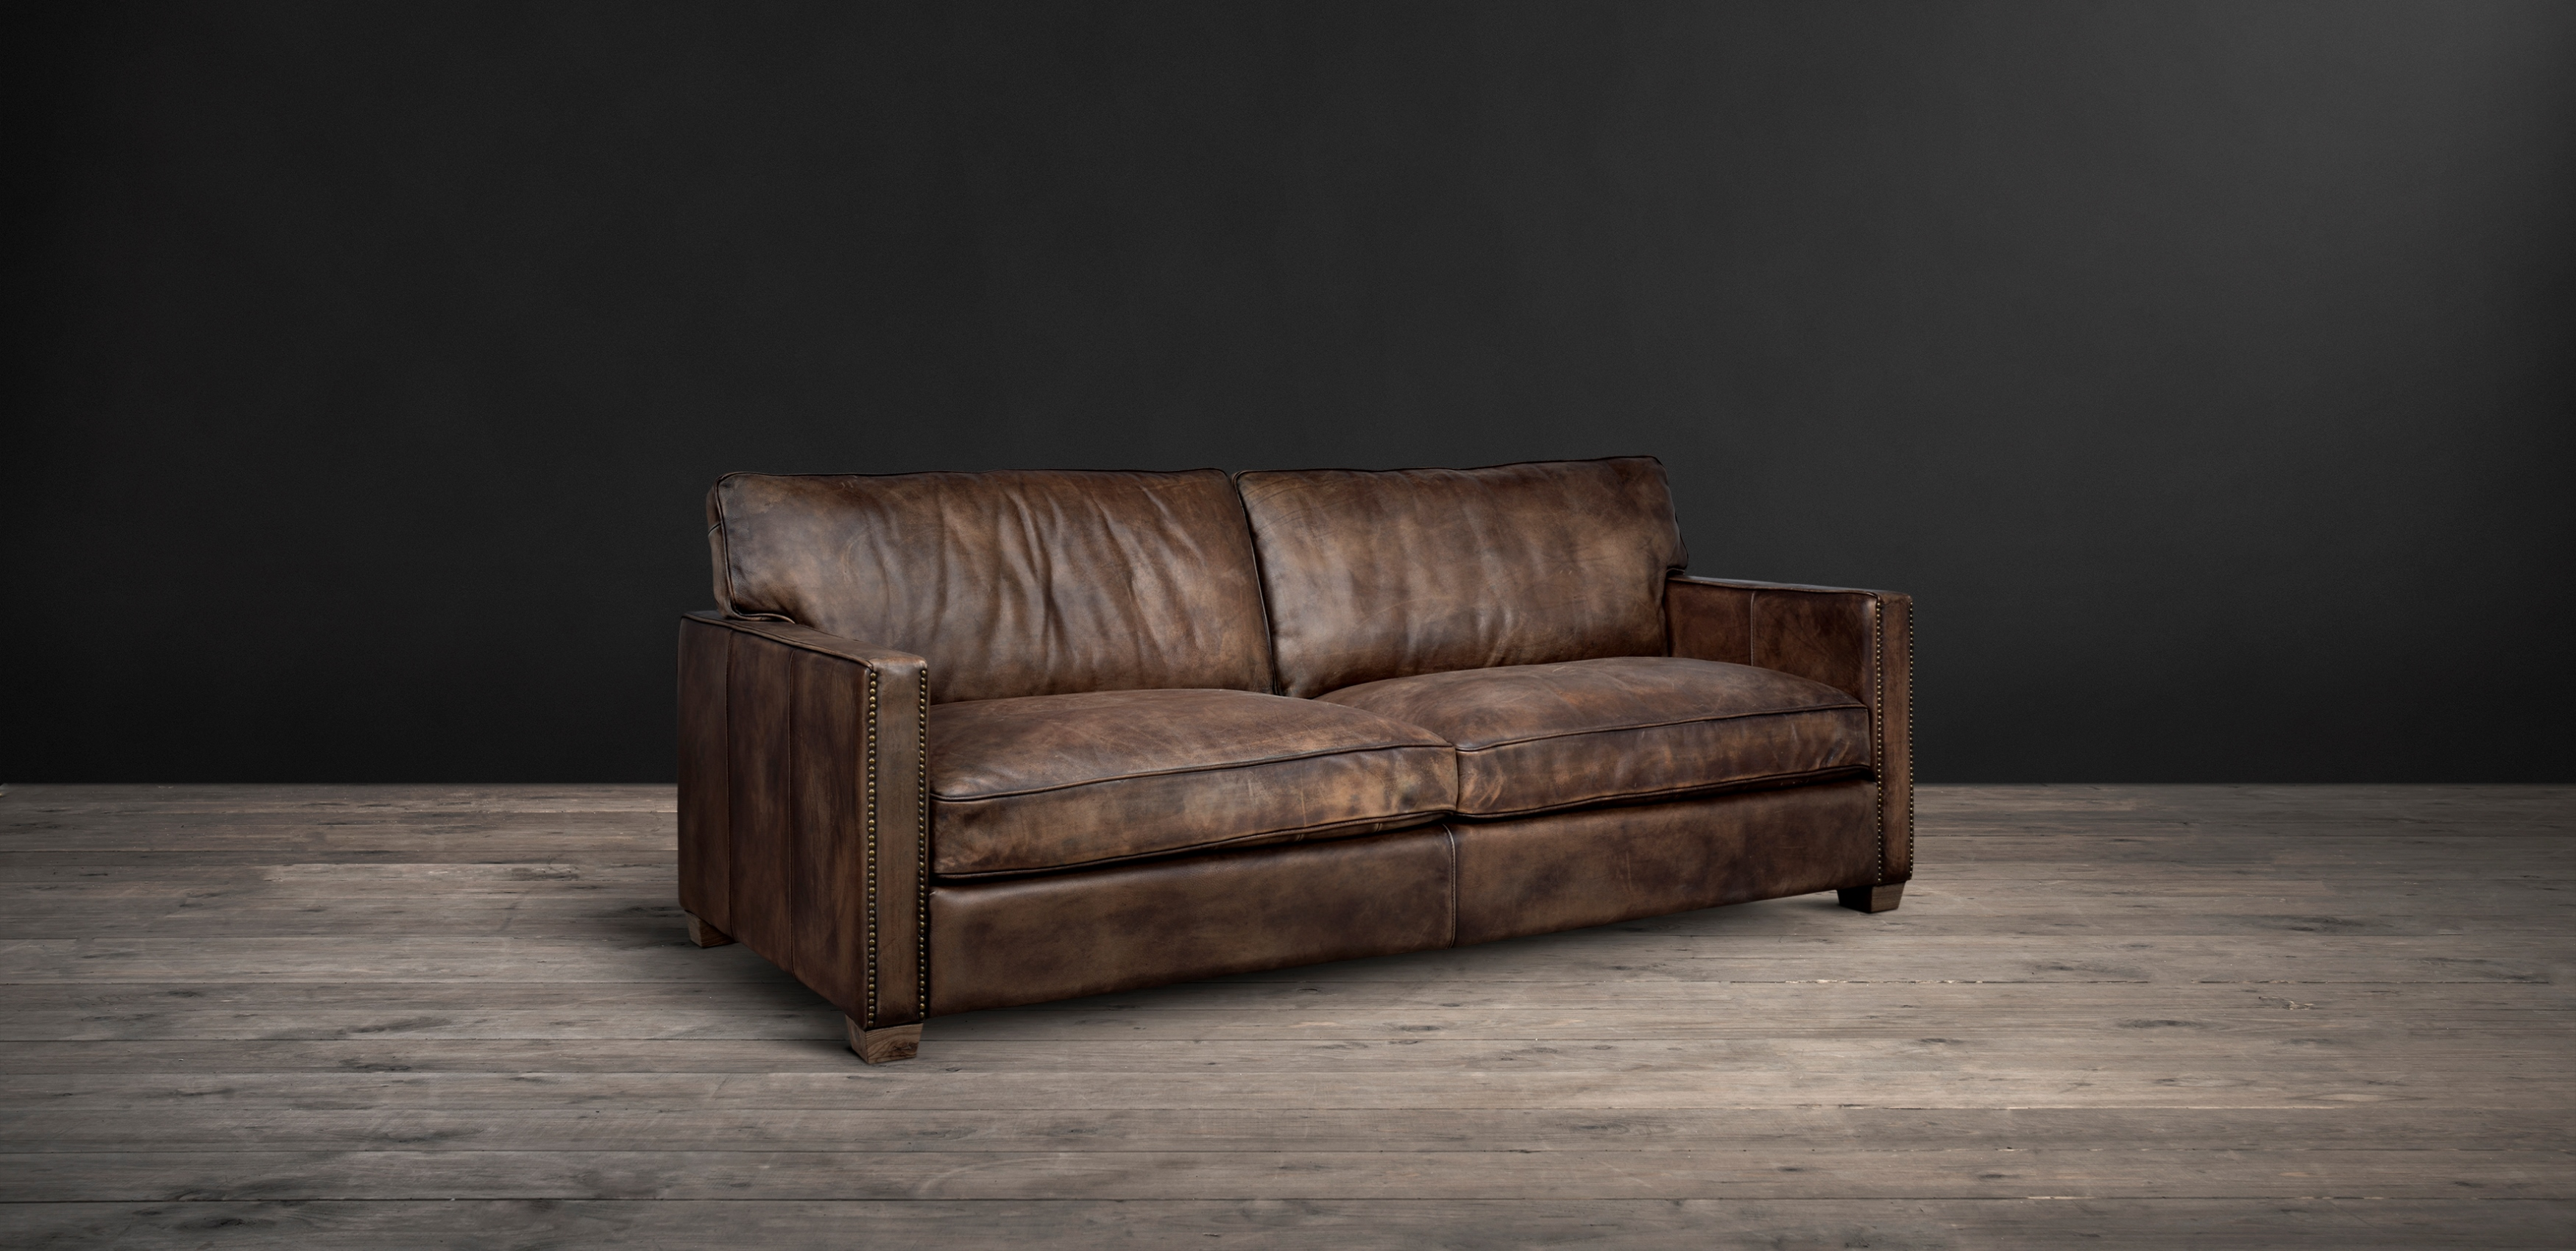 timothy oulton classic leather sofa viscount william leather sofa from side - Sofa Leather